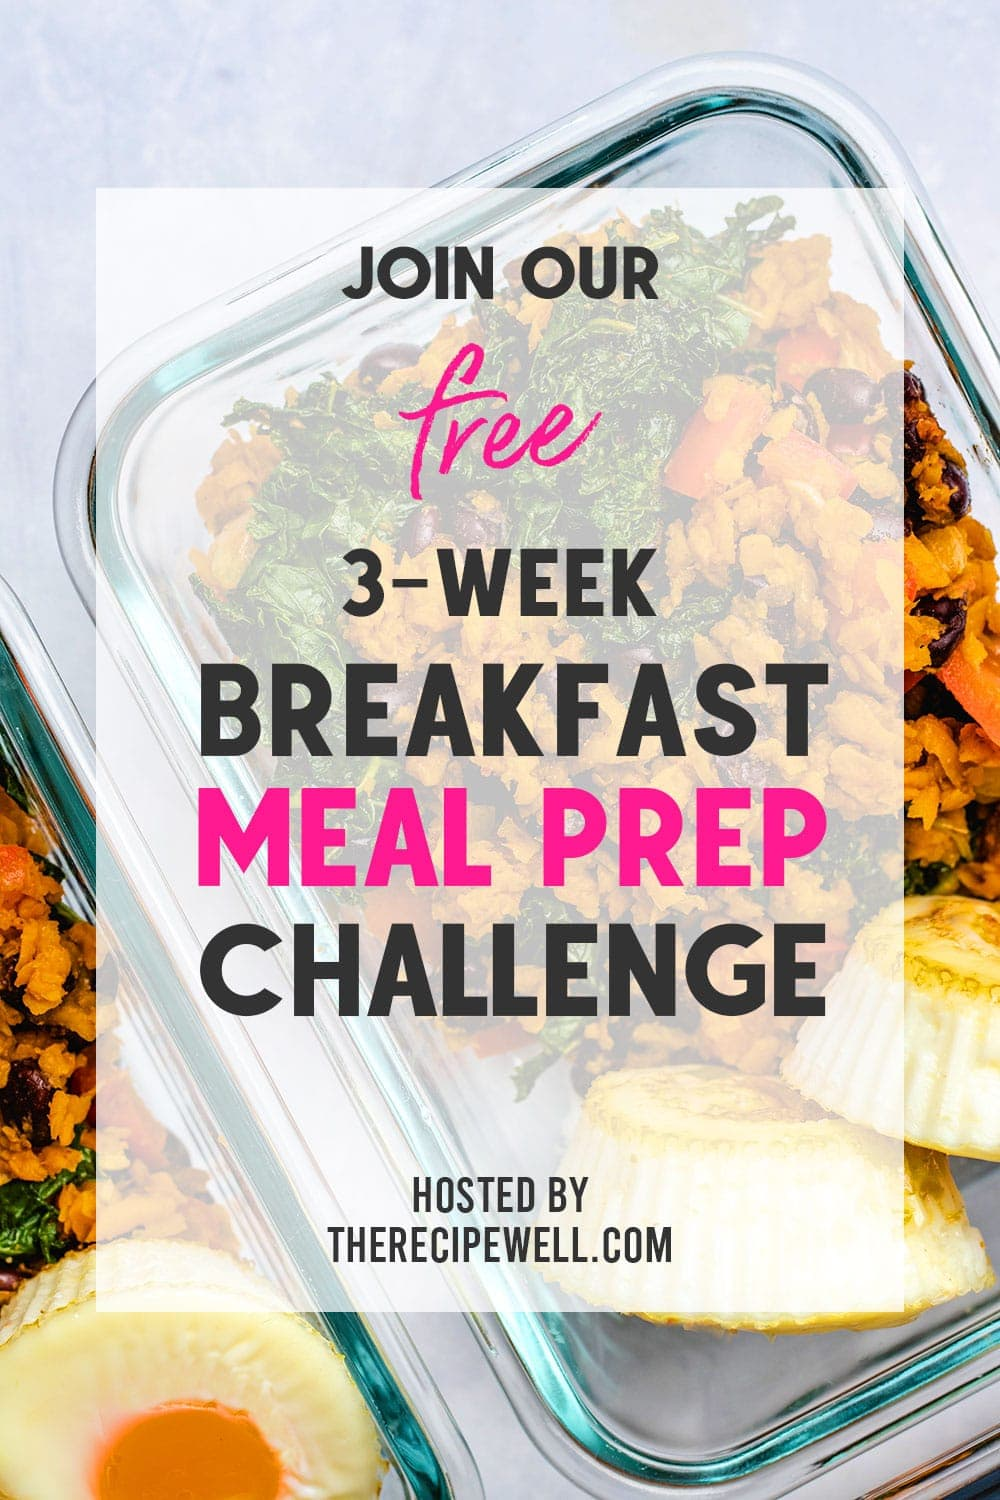 Sign up for this FREE 3-week healthy breakfast meal prep challenge! You'll get recipes, printable grocery lists and meal prep tips!   #healthy #breakfast #mealprep #printables #free  #easy #glutenfree via @therecipewell